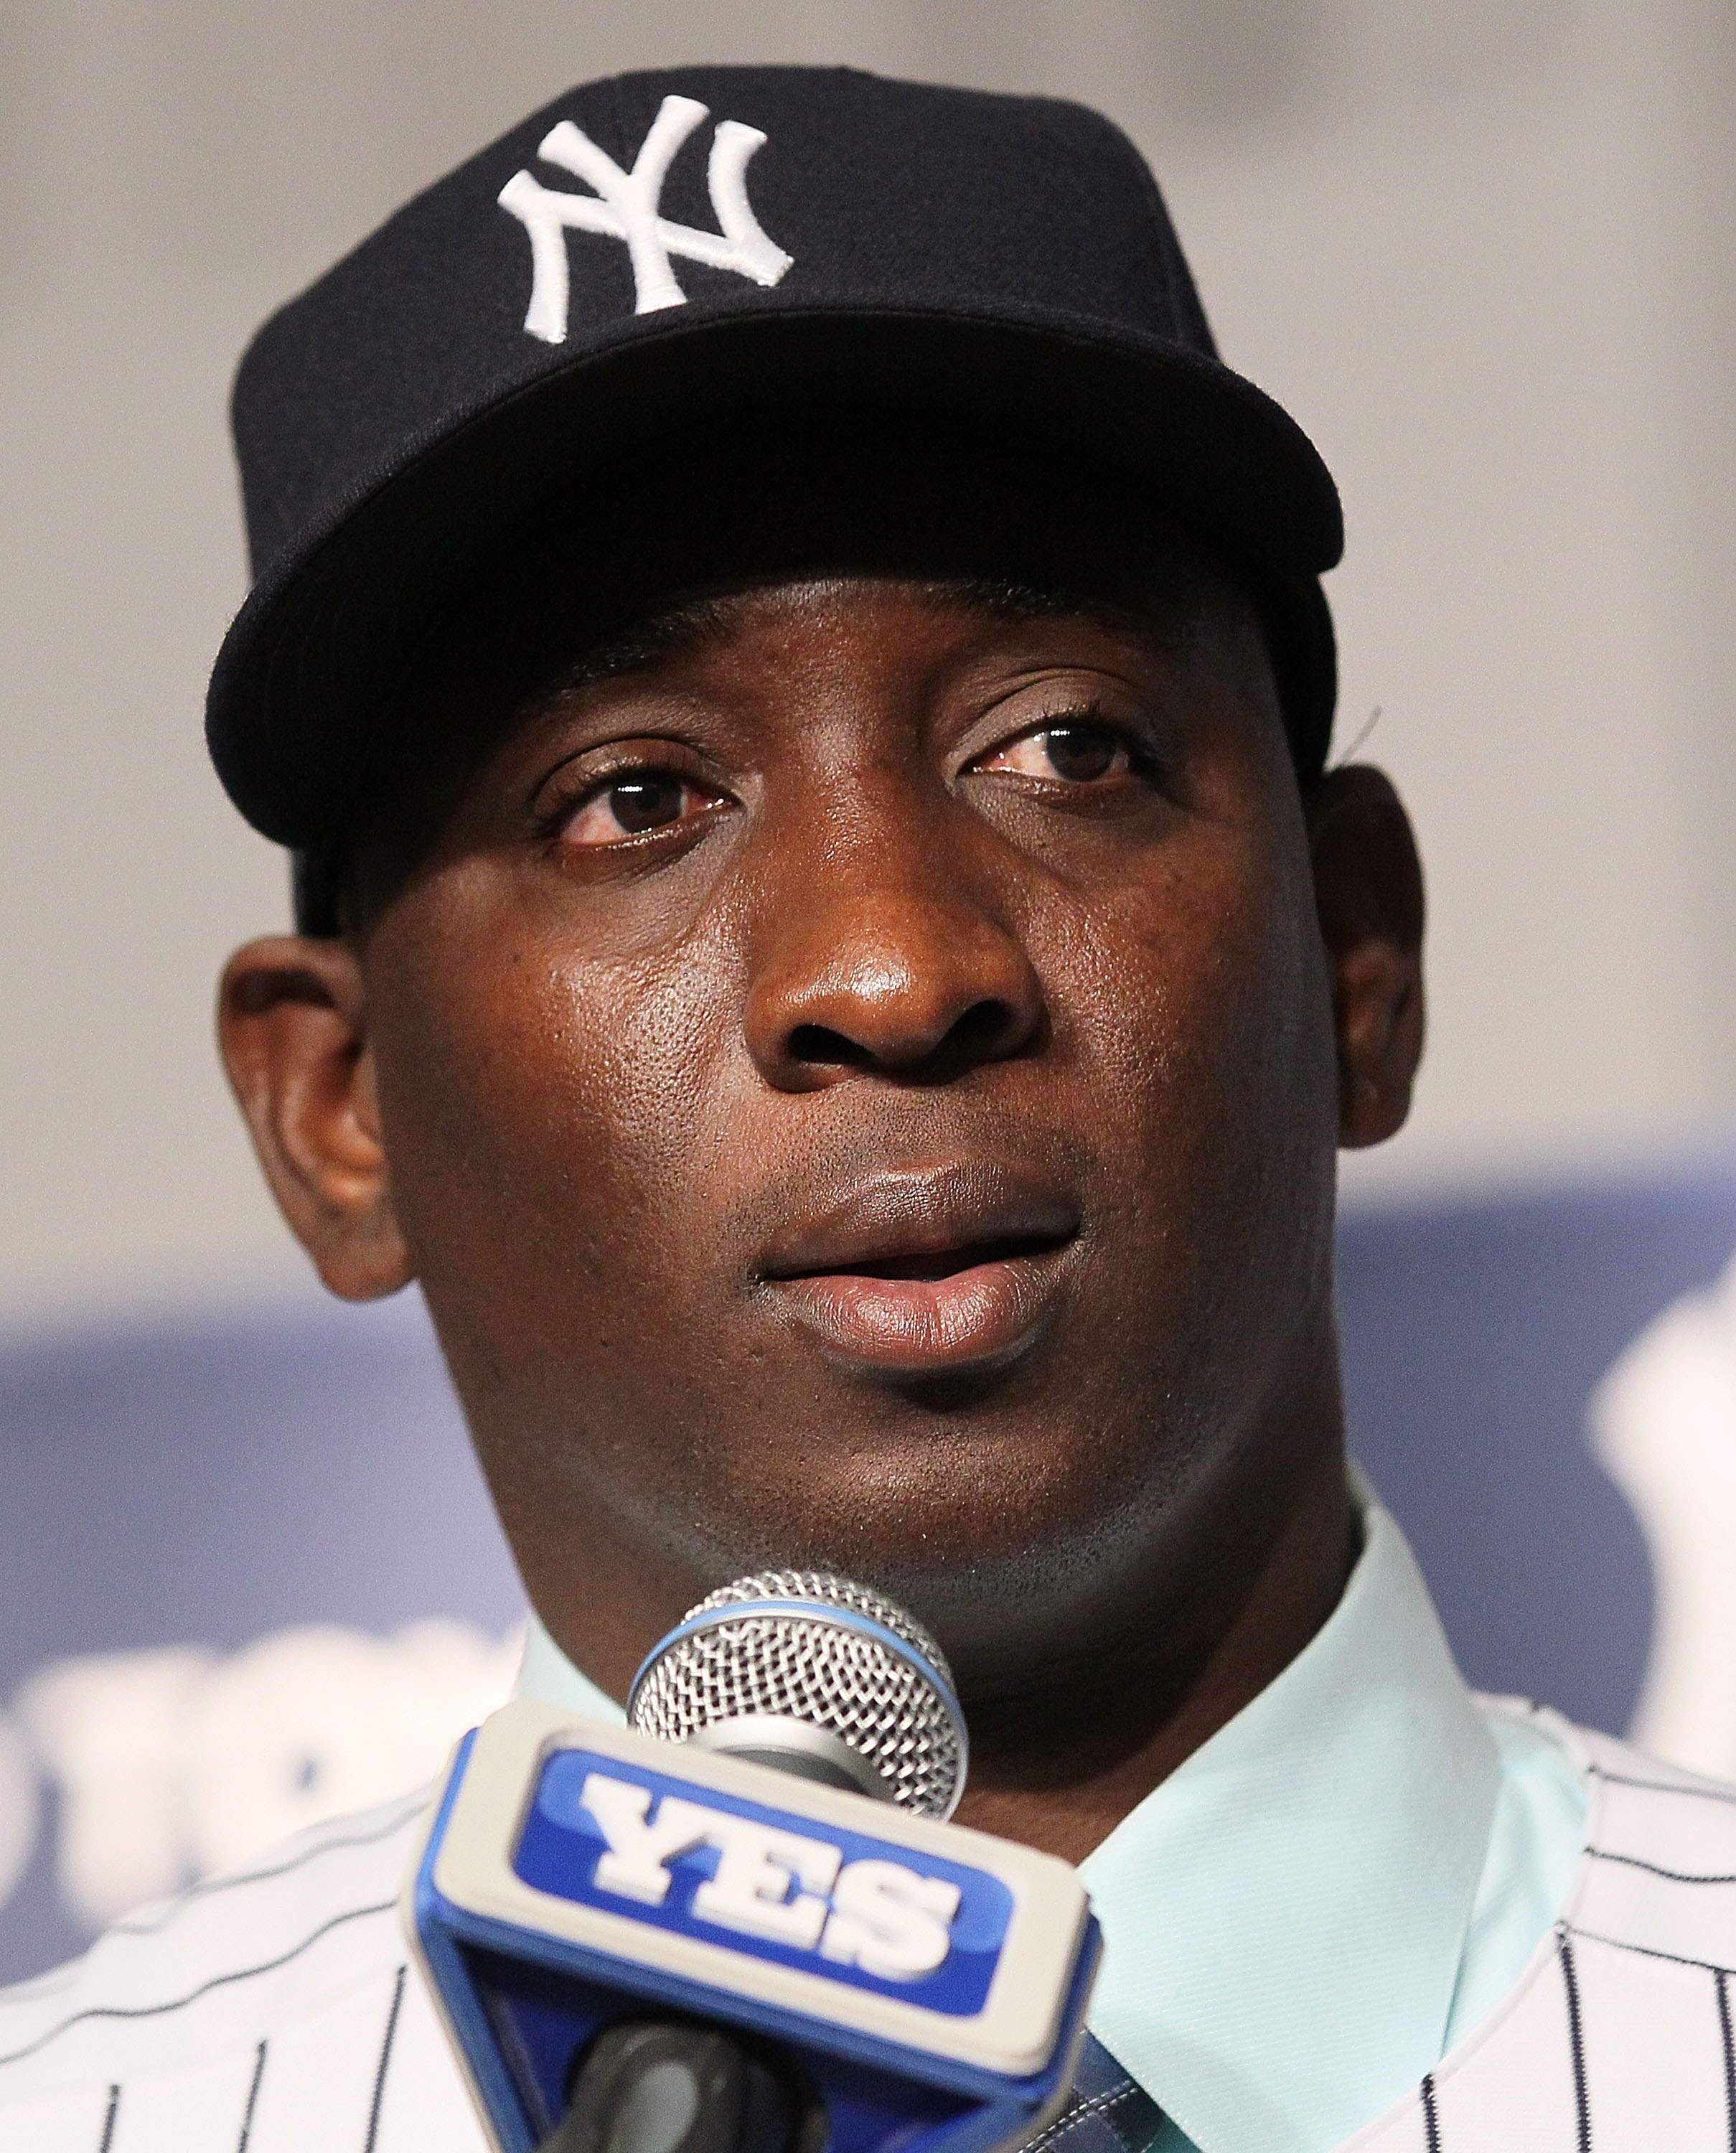 NEW YORK, NY - JANUARY 19: Rafael Soriano of the New York Yankees speaks during his introduction press conference on January 19, 2011 at Yankee Stadium in the Bronx borough of New York City. The Yankees signed Soriano to a three year contract. (Photo by J